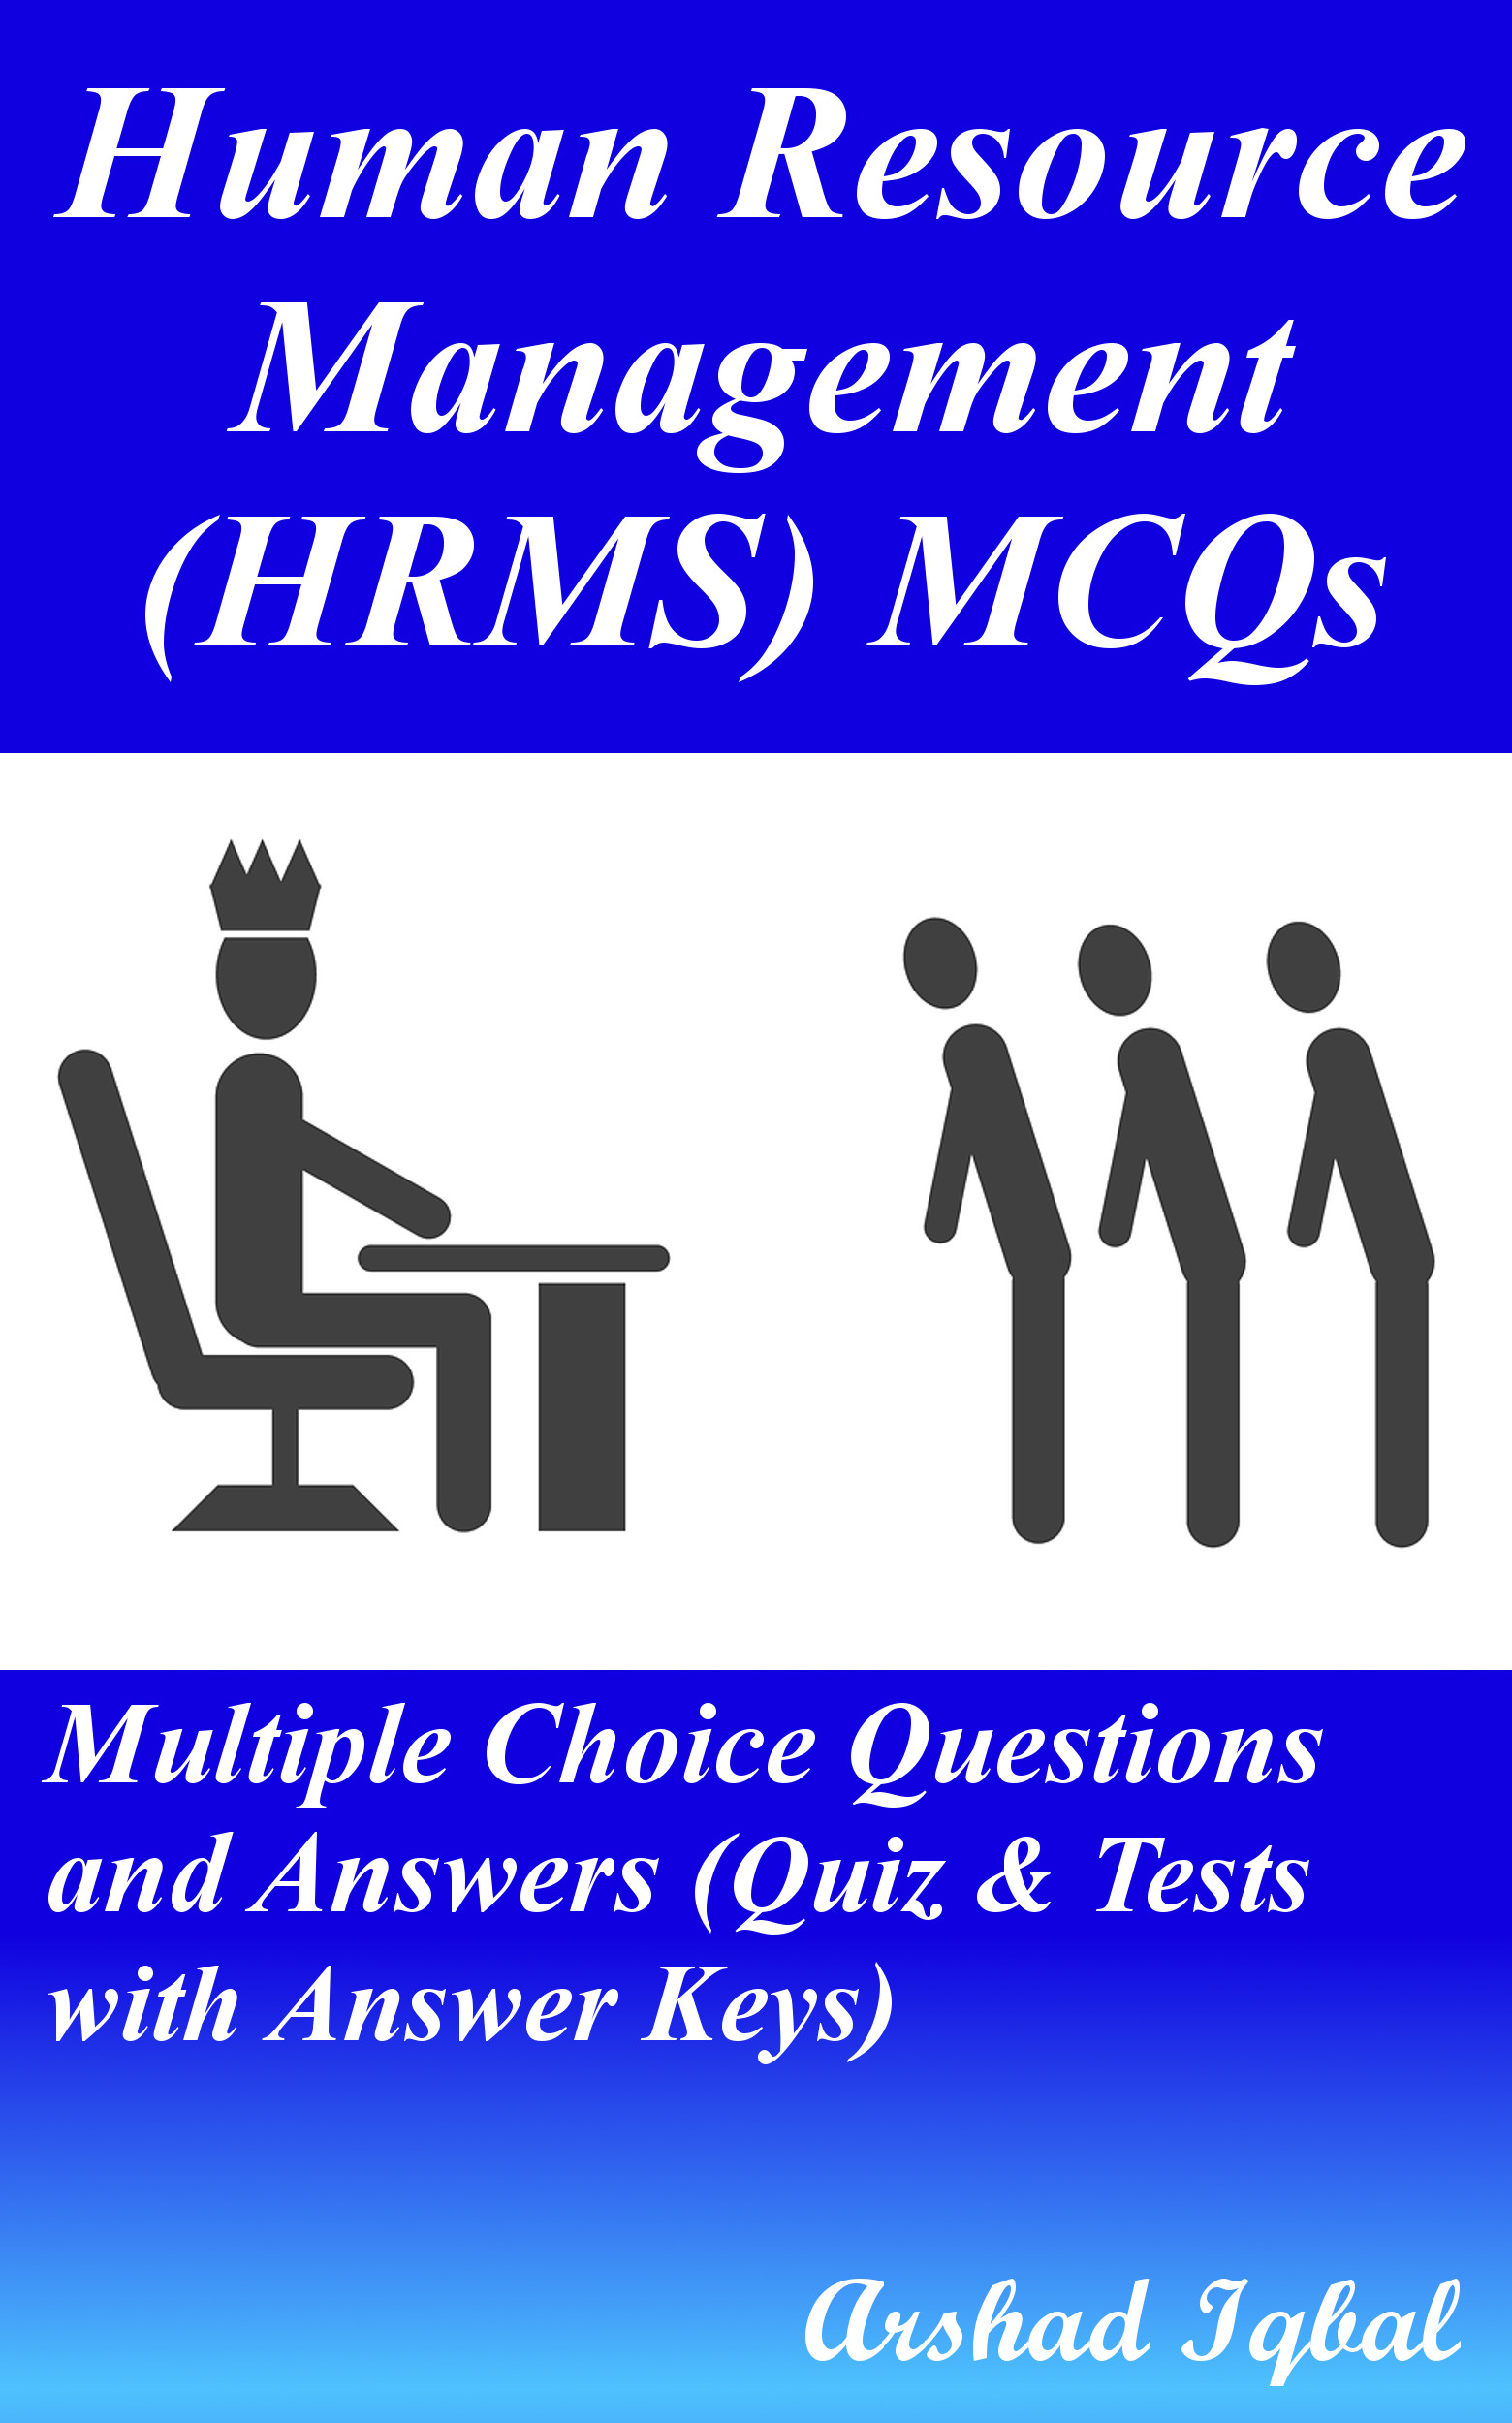 Human Resource Management HRMS MCQs: Multiple Choice Questions and Answers (Quiz & Tests with Answer Keys)